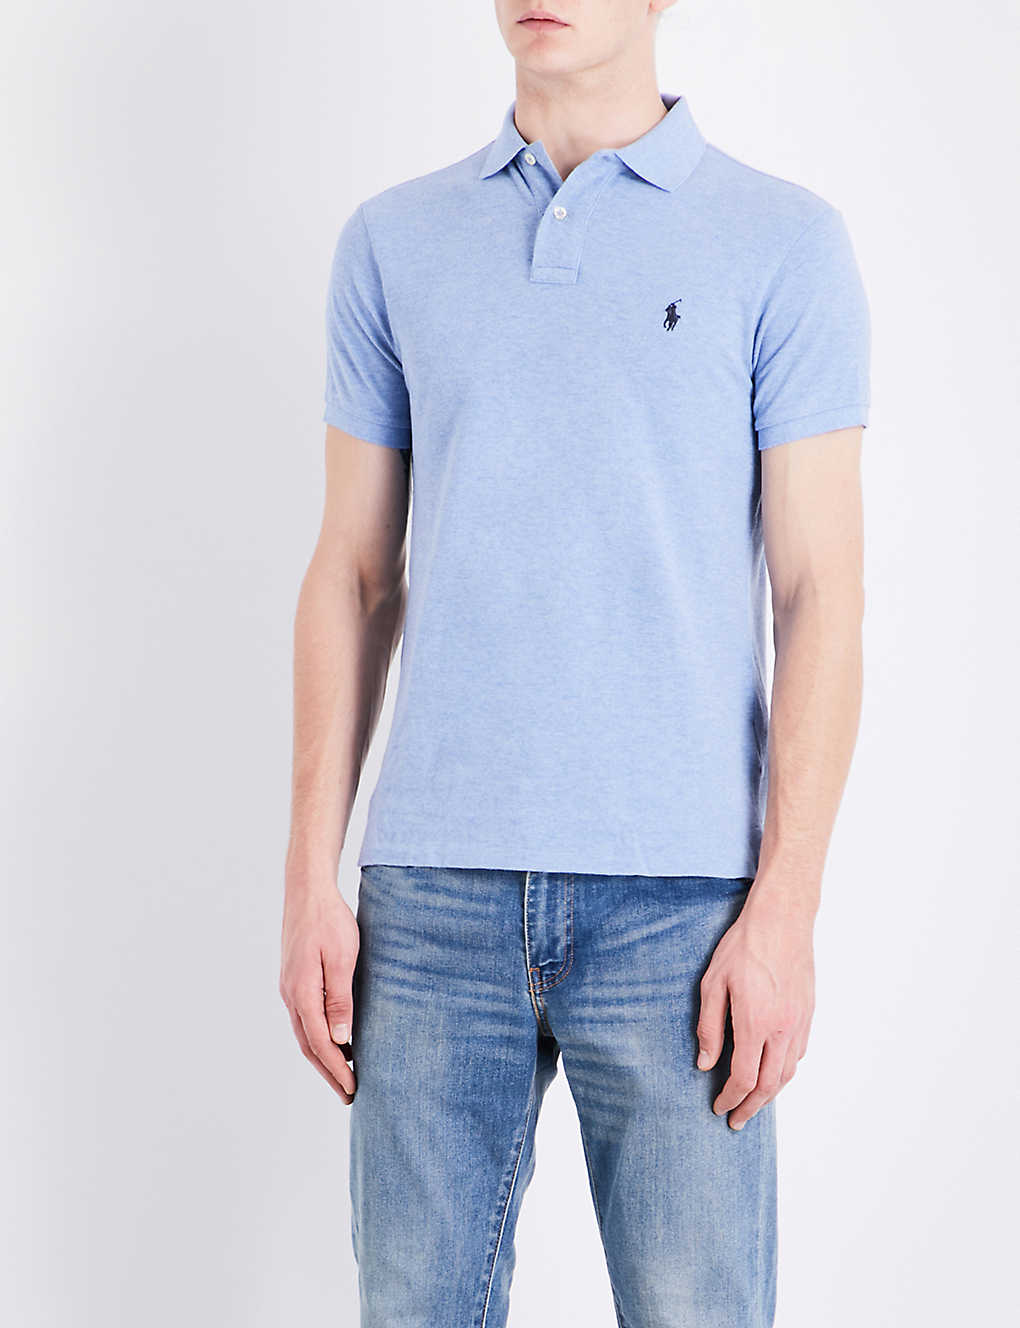 9ae7ba01 POLO RALPH LAUREN - Slim-fit cotton-pique polo shirt | Selfridges.com